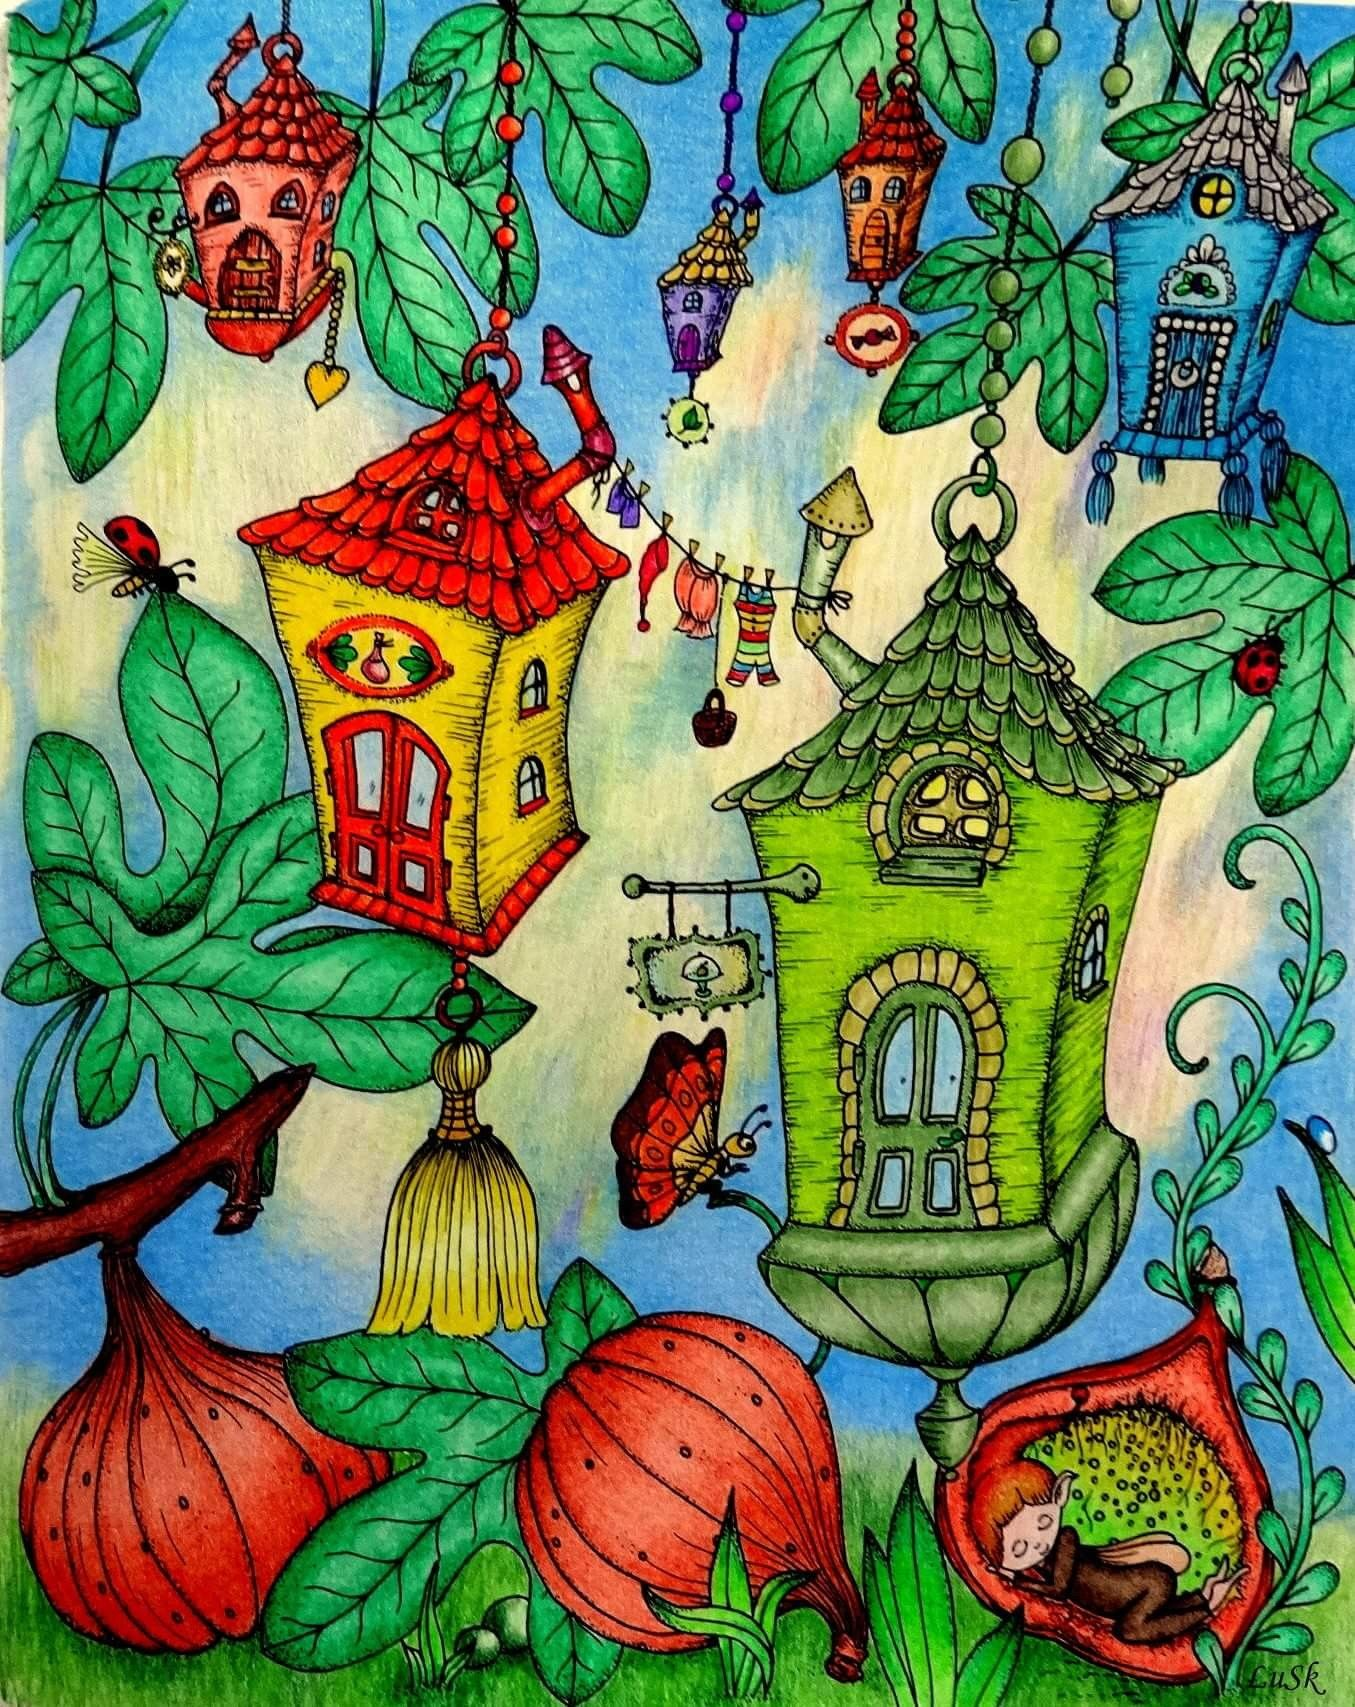 Pin by Coloring Queen on Klára Marková Coloring Books | Pinterest ...